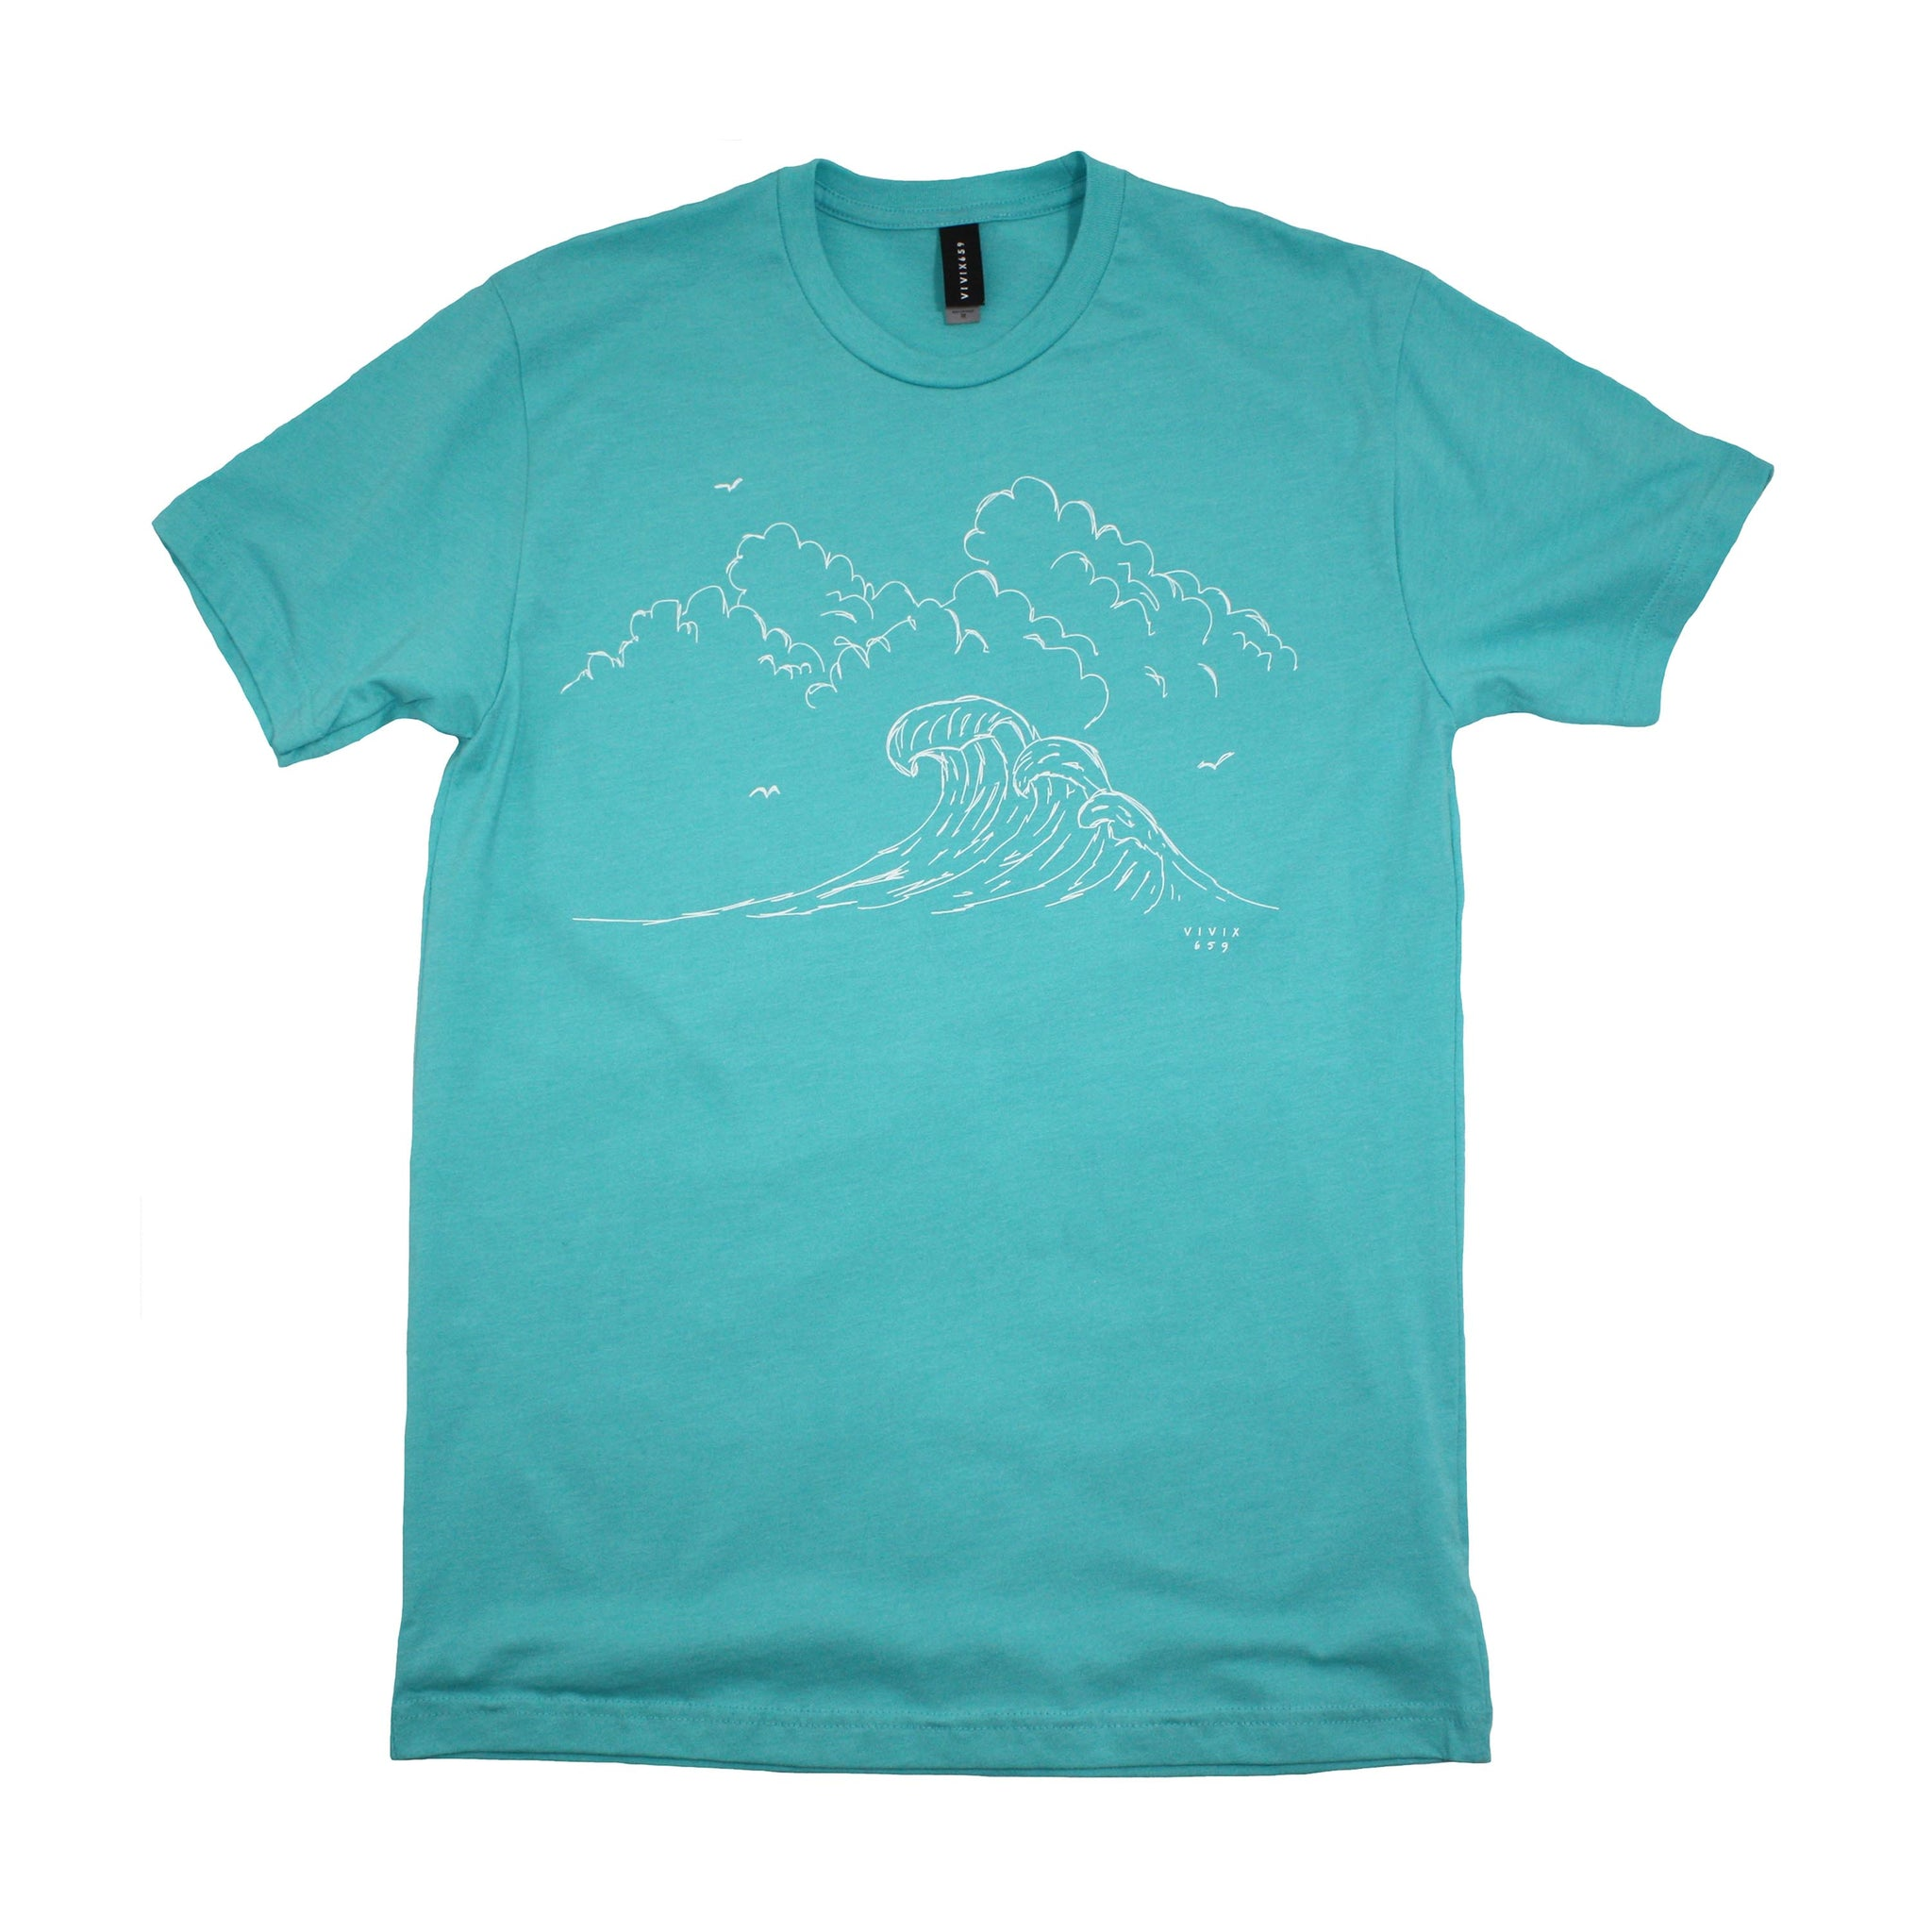 Hand drawn crashing waves t shirt